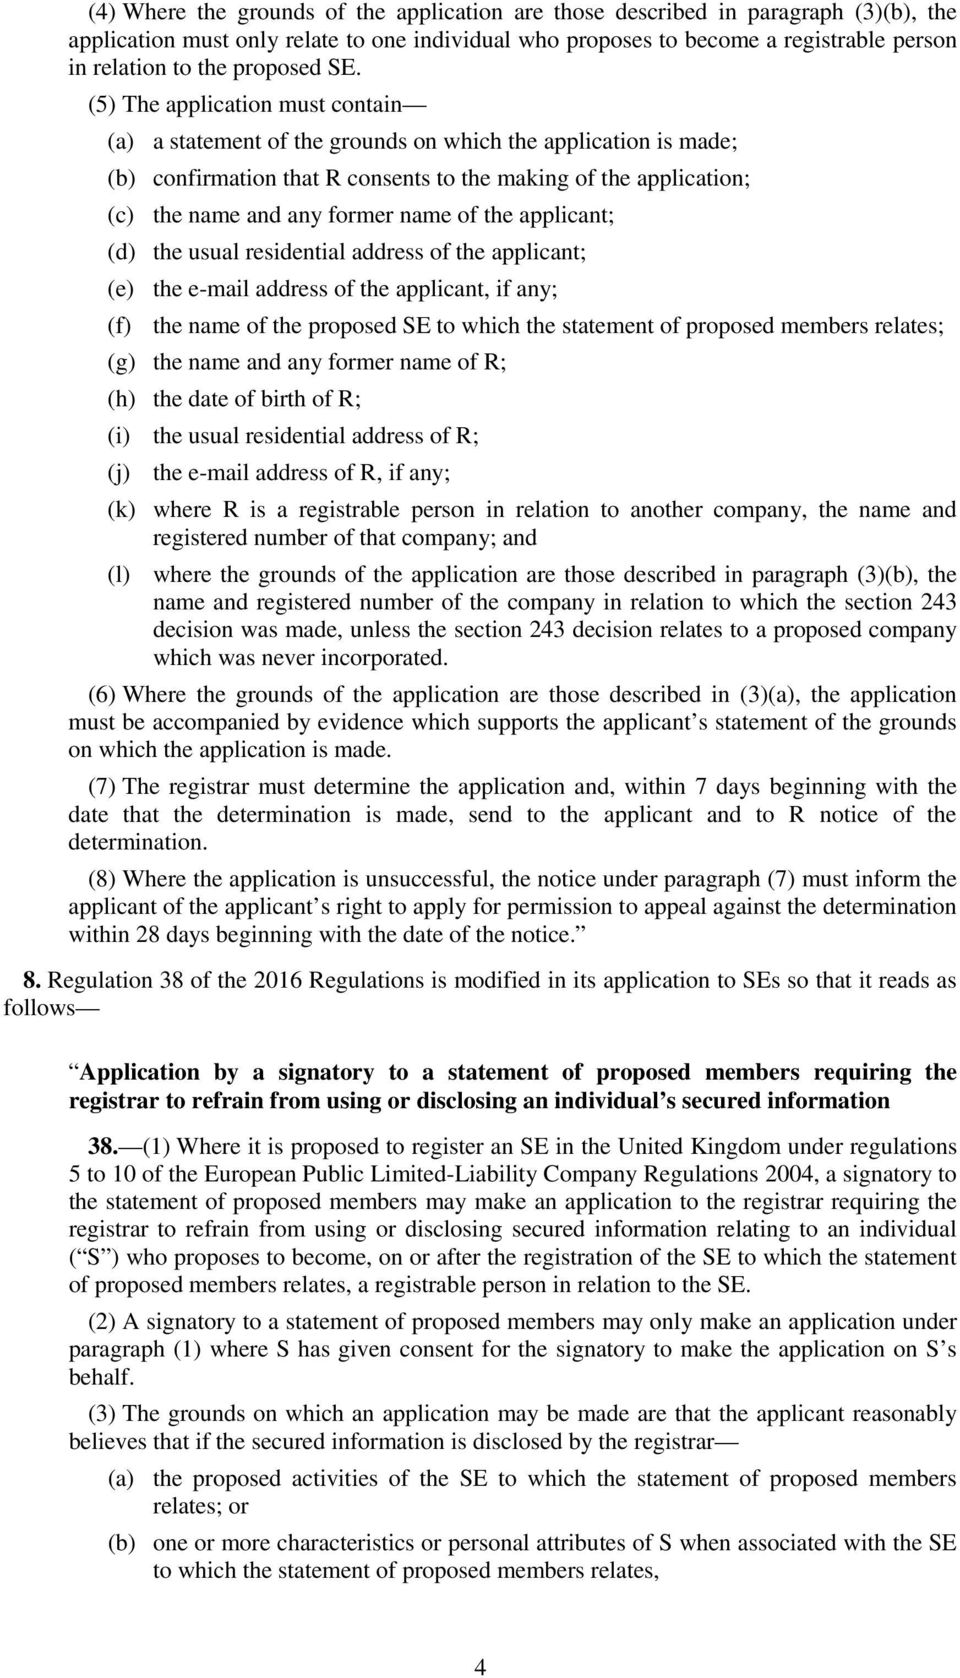 (5) The application must contain (a) a statement of the grounds on which the application is made; (b) confirmation that R consents to the making of the application; (c) the name and any former name